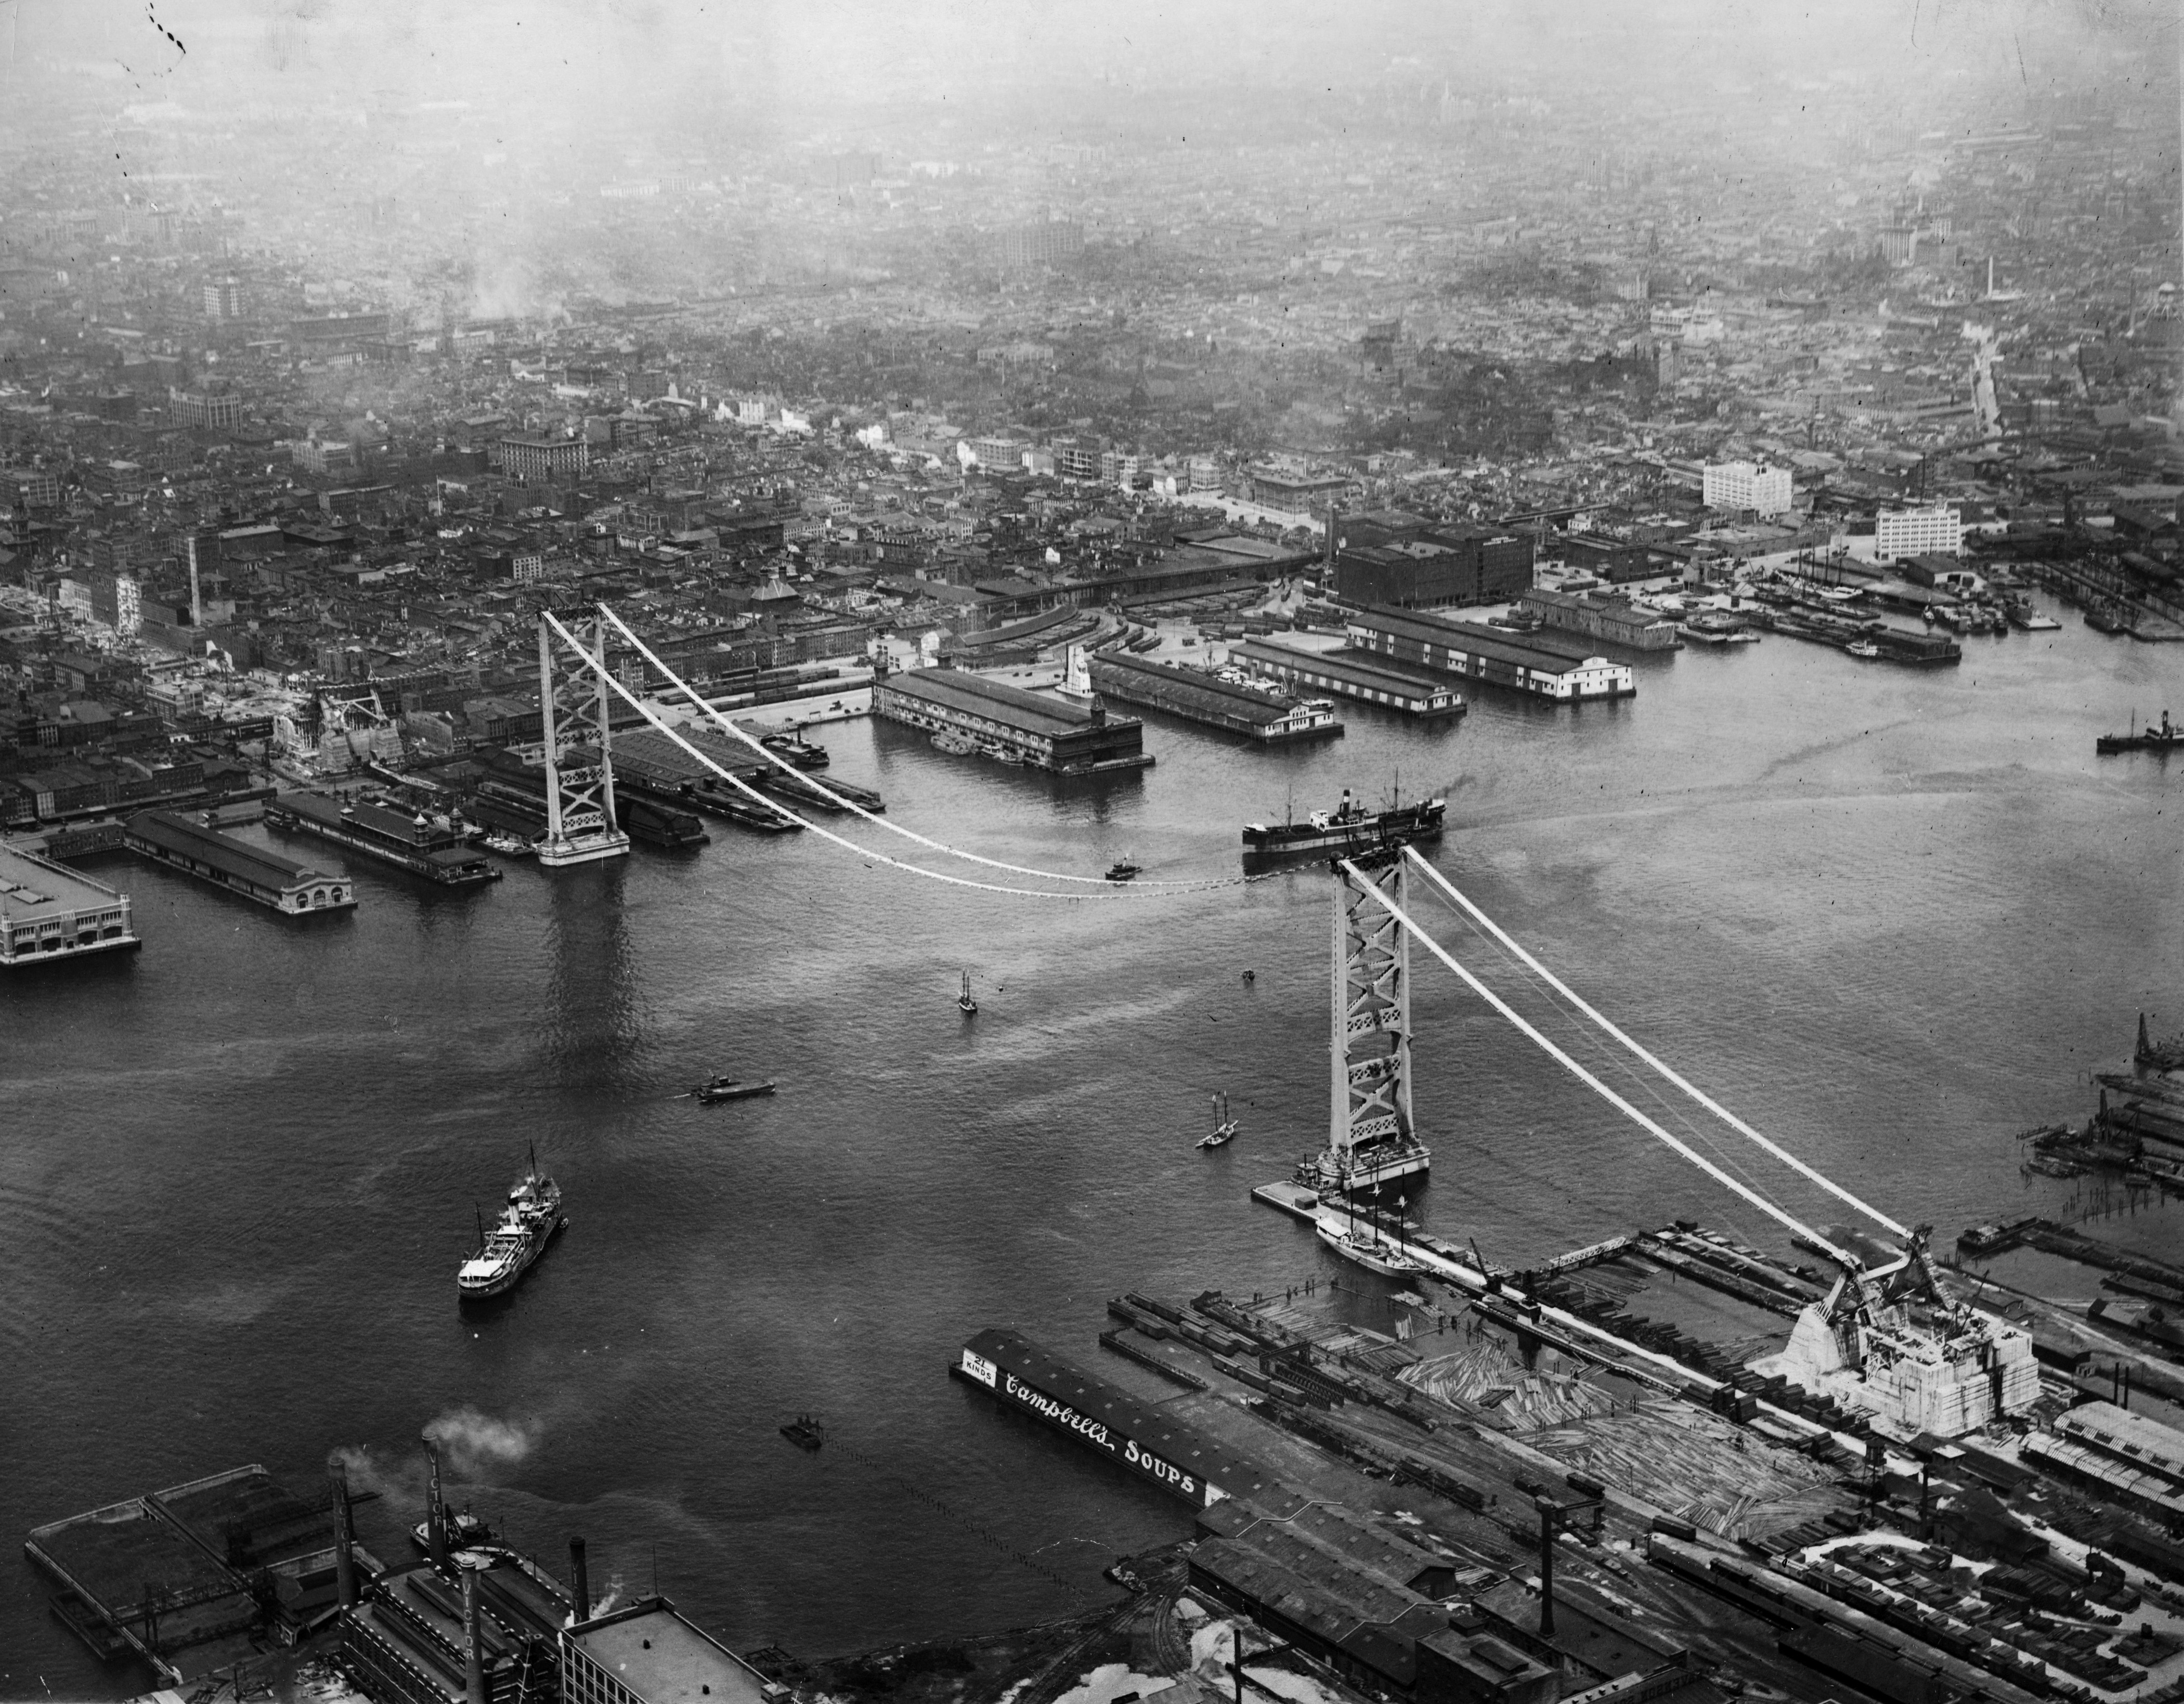 Philadelphia-Camden Bridge Under Construction, 1924. (Image no. 4300)